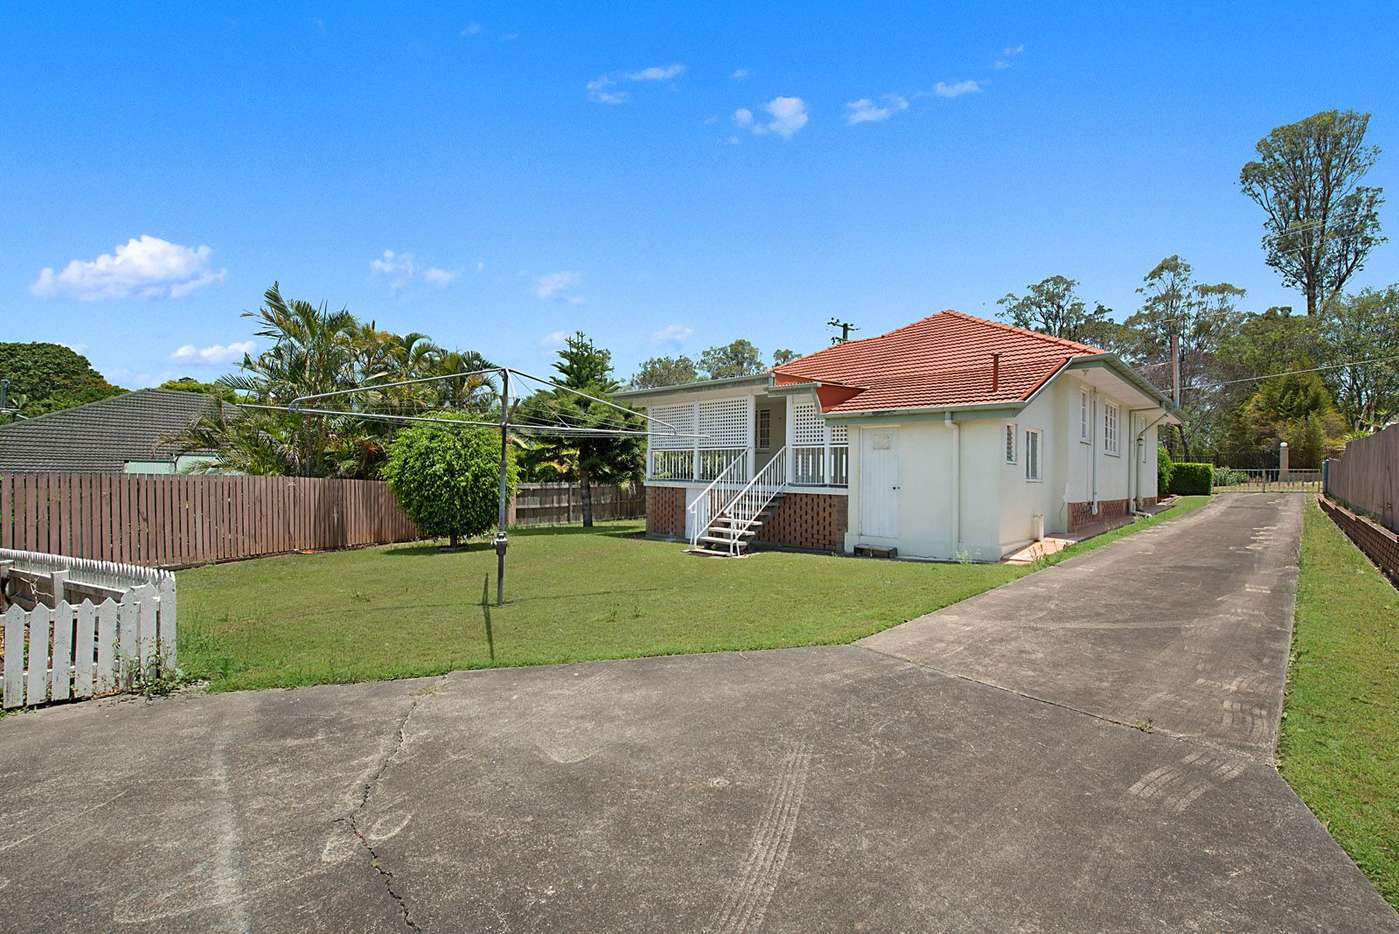 Main view of Homely house listing, 23 Deodar Street, Inala, QLD 4077